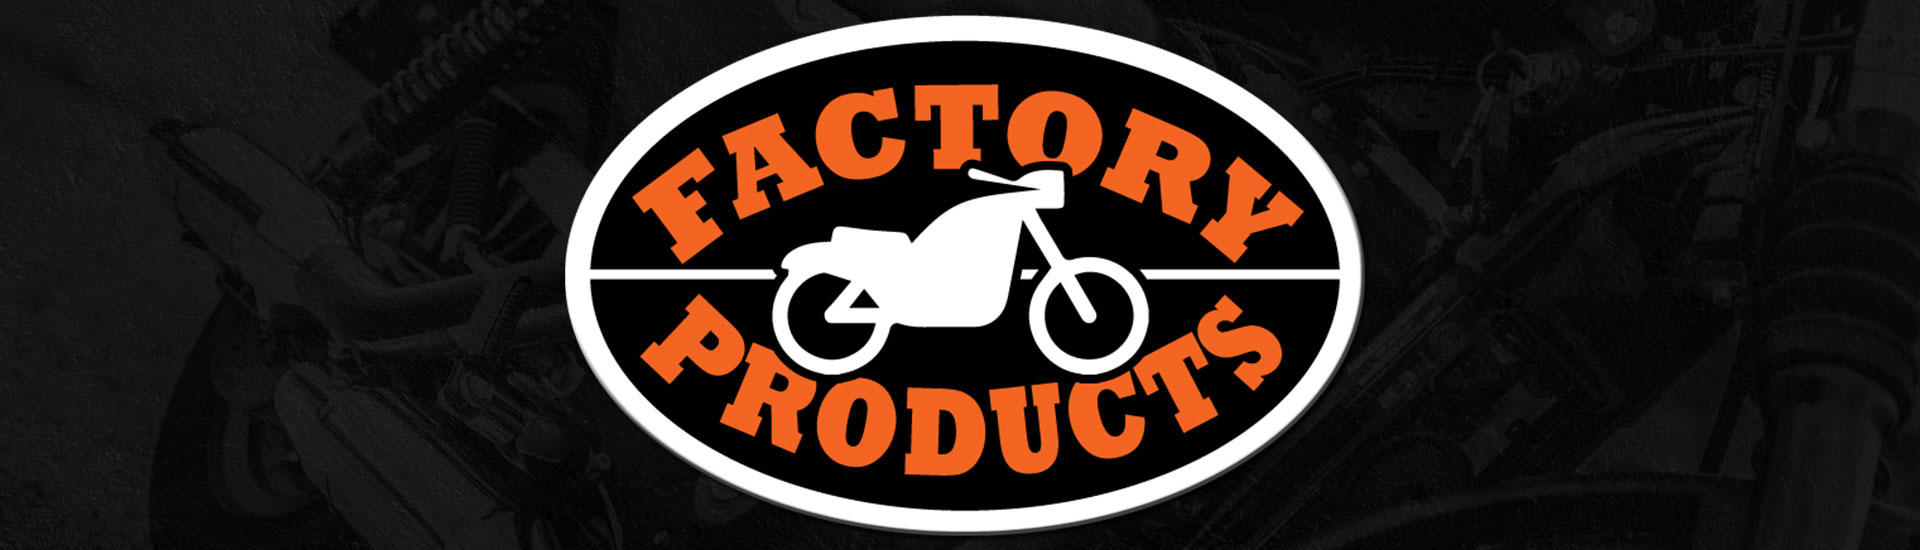 Factory Products